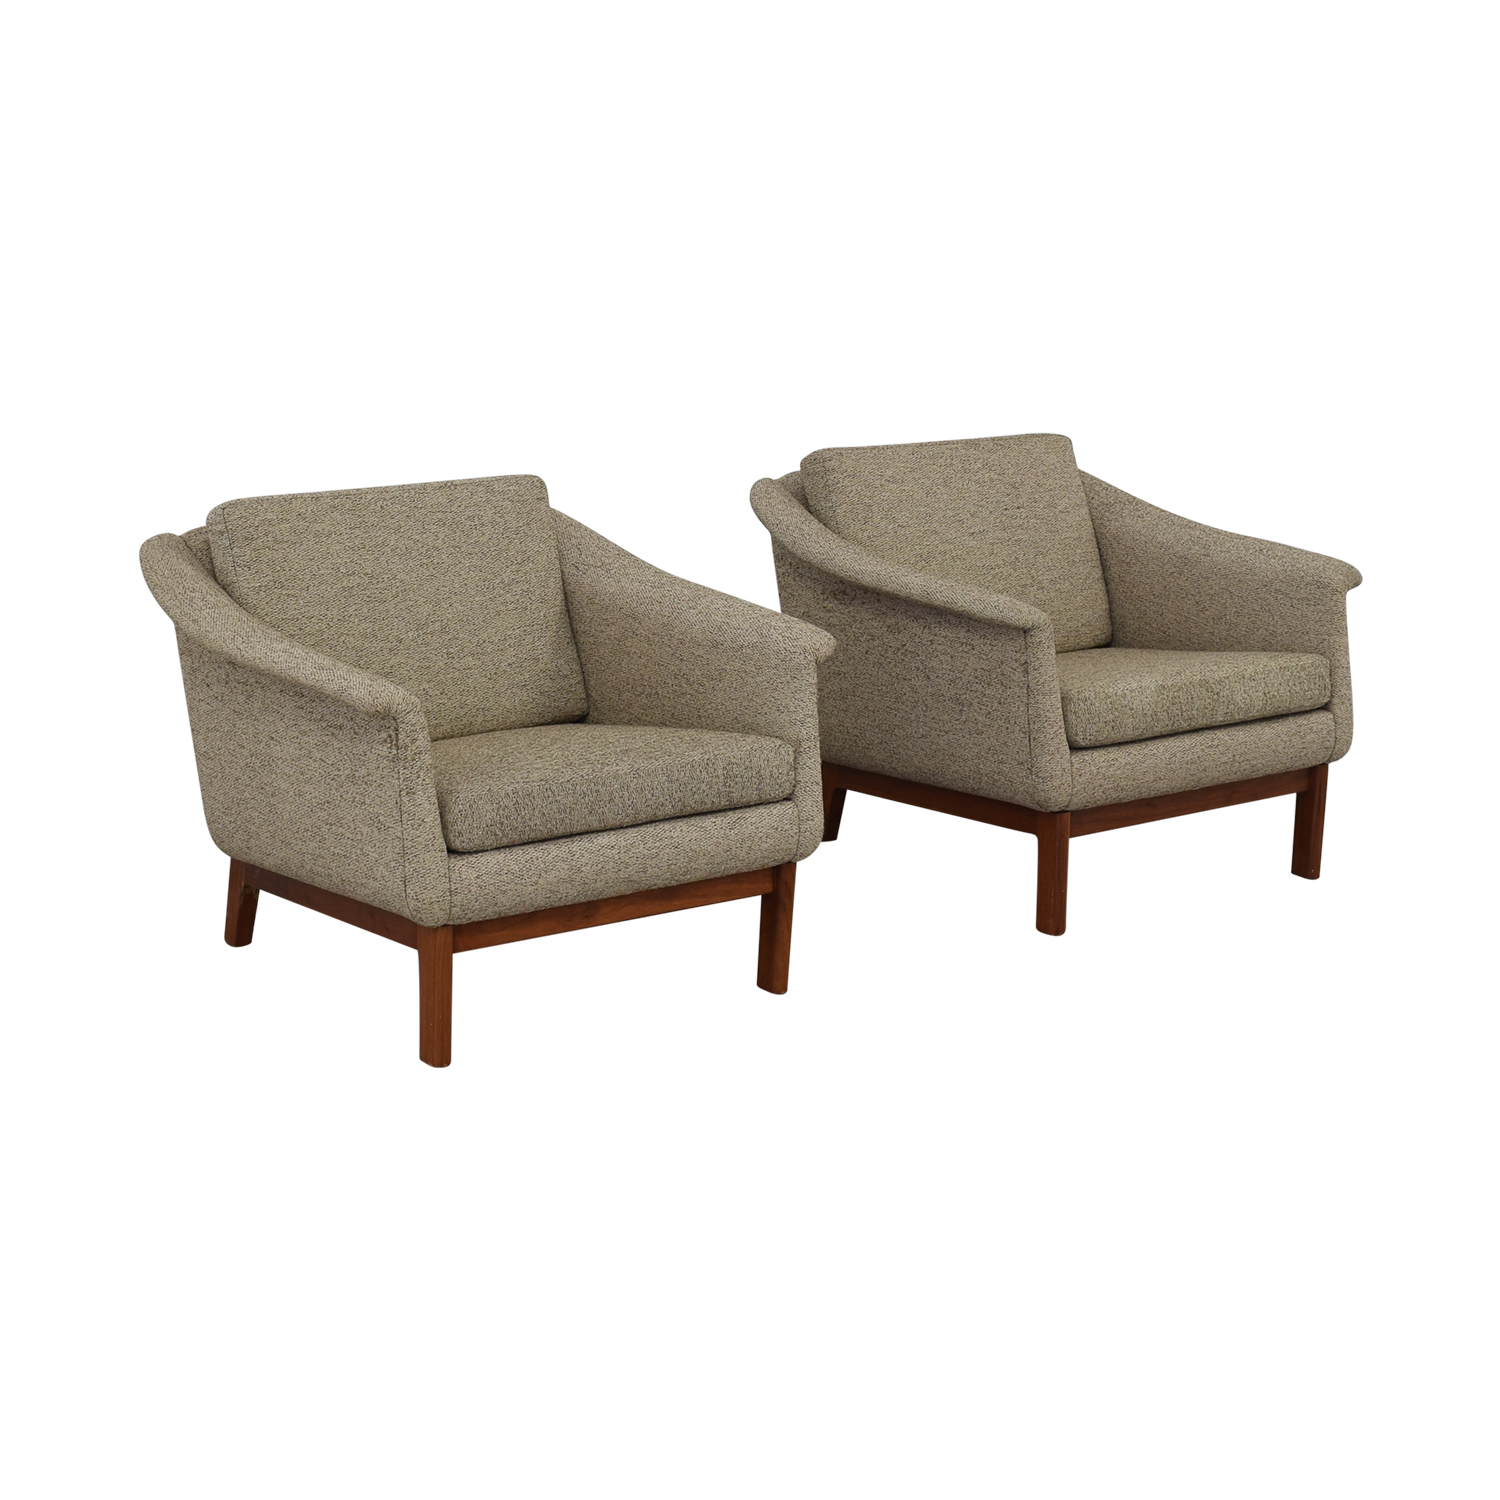 DUX DUX Mid Century Lounge Chairs nj